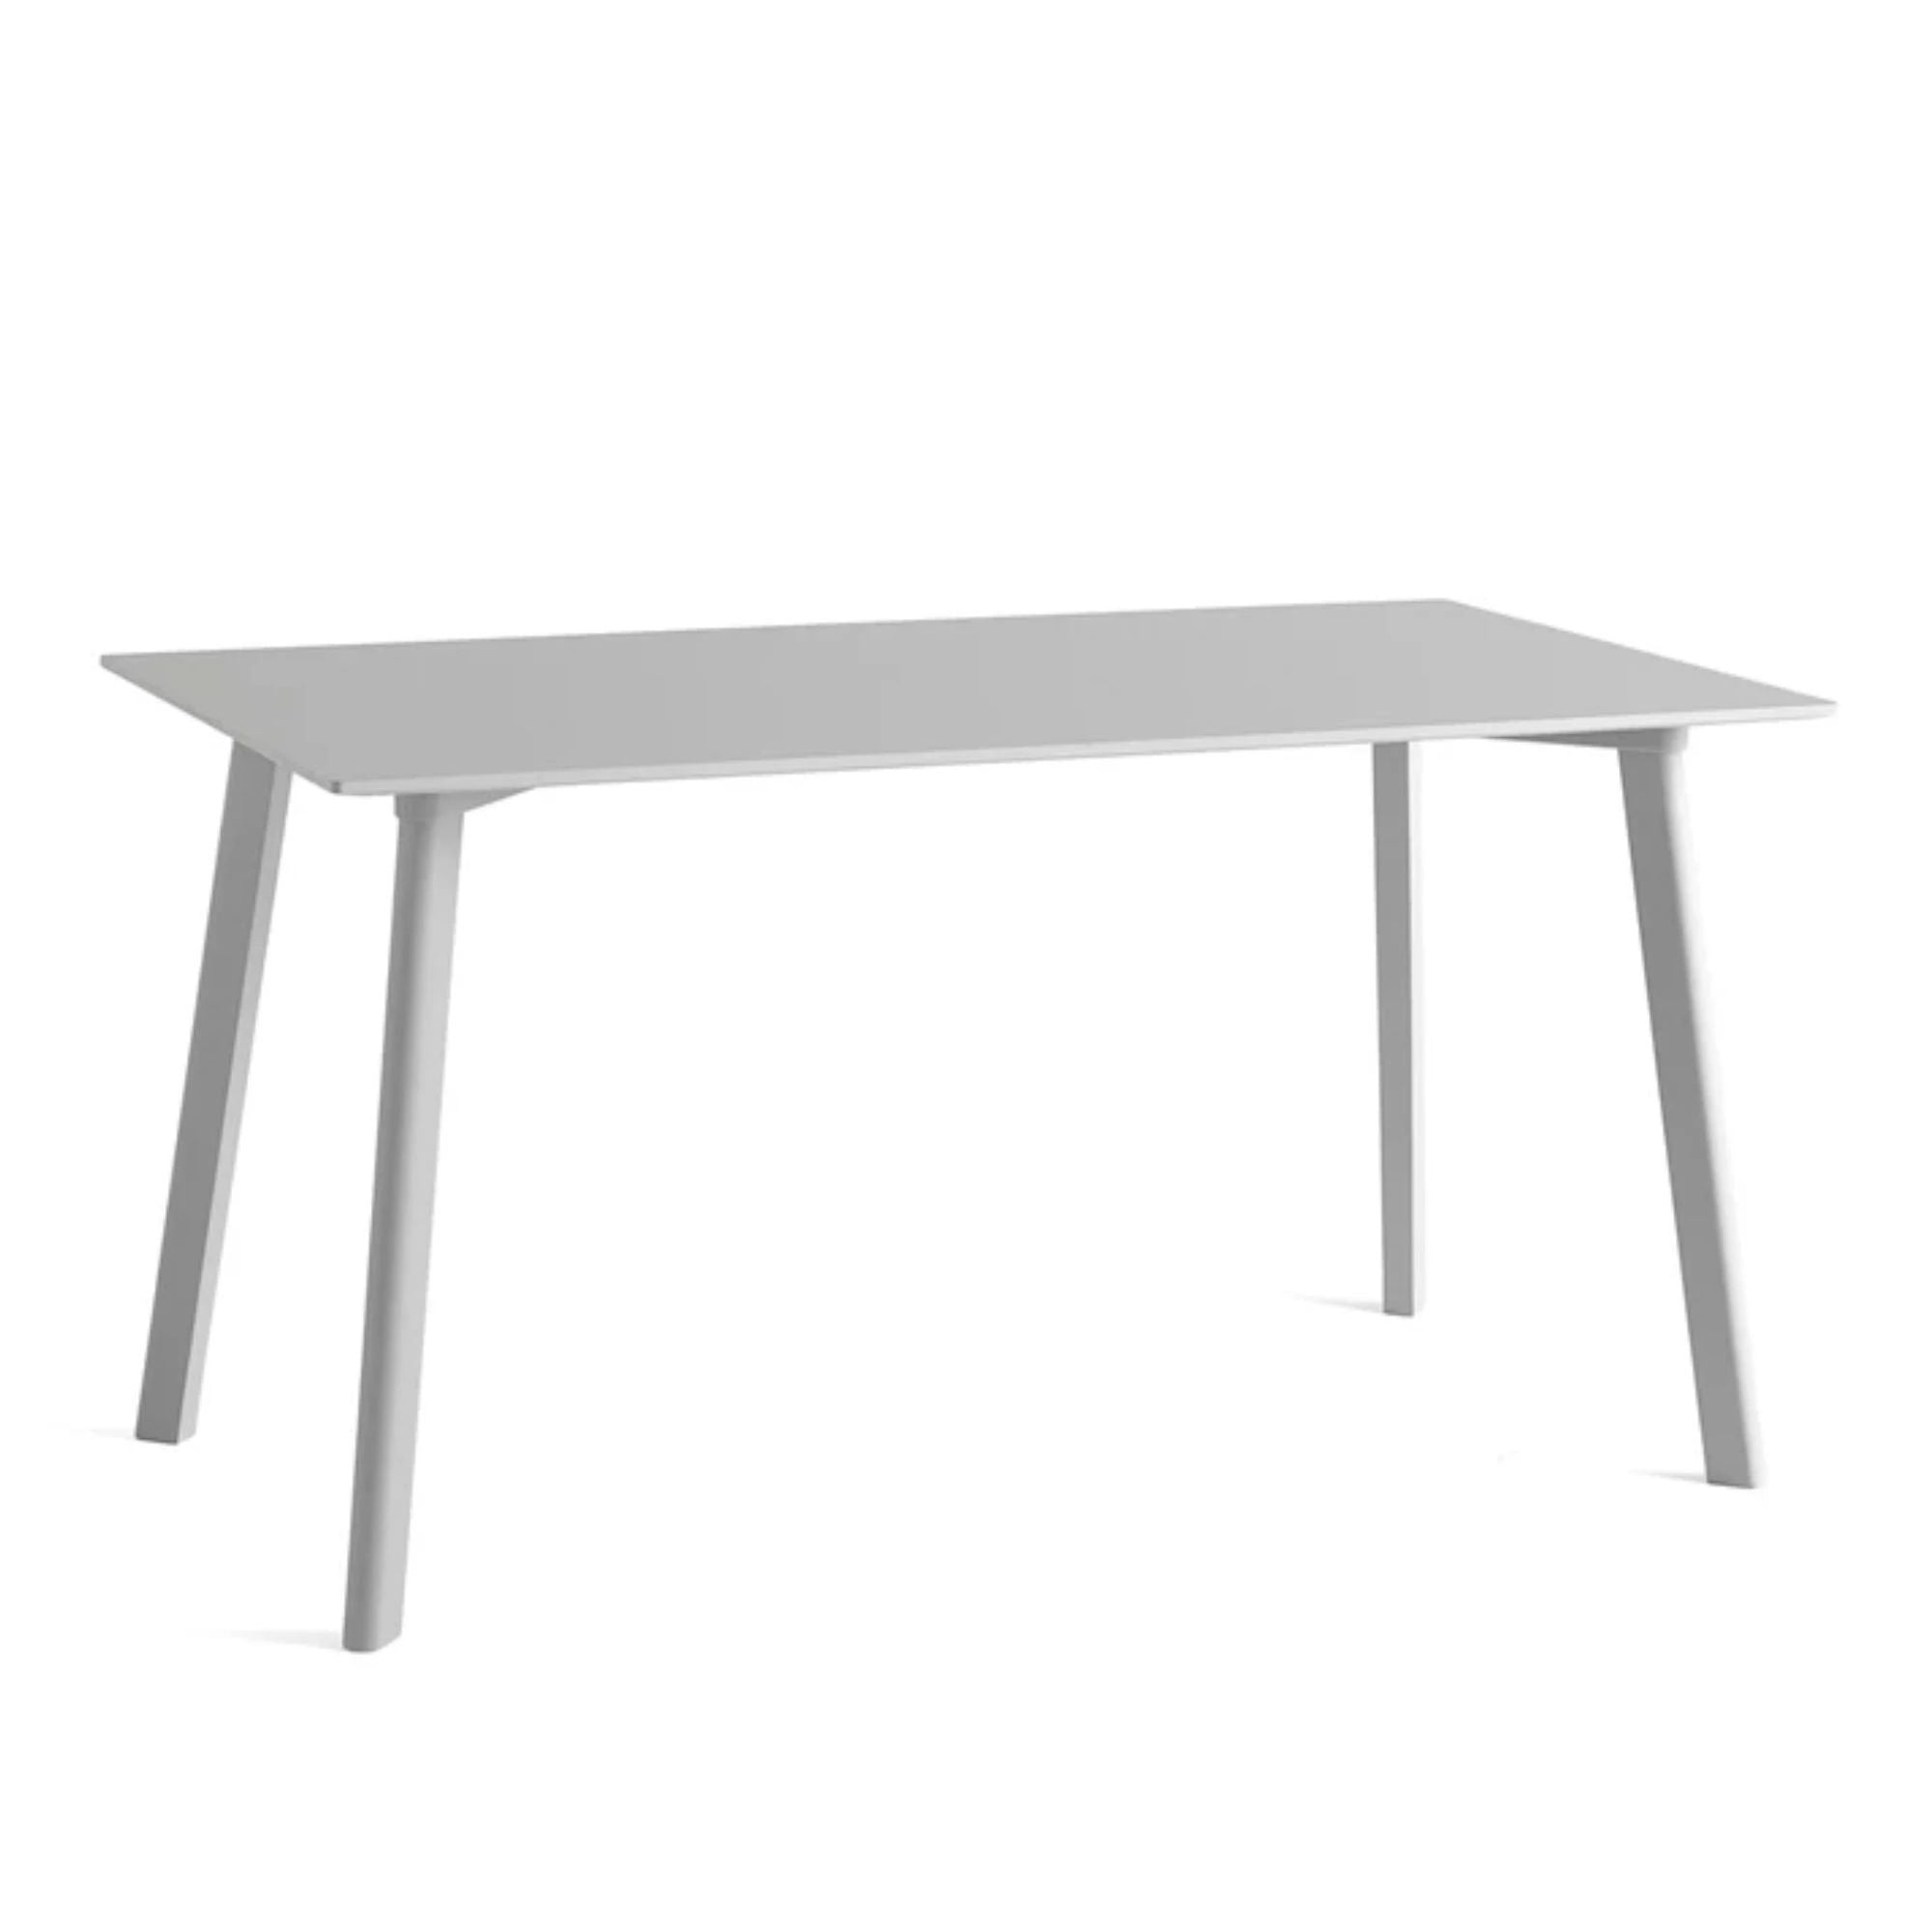 CPH Deux 210 table L140 x W75 , Dusty Grey Laminate-Dusty Grey Stained Beech